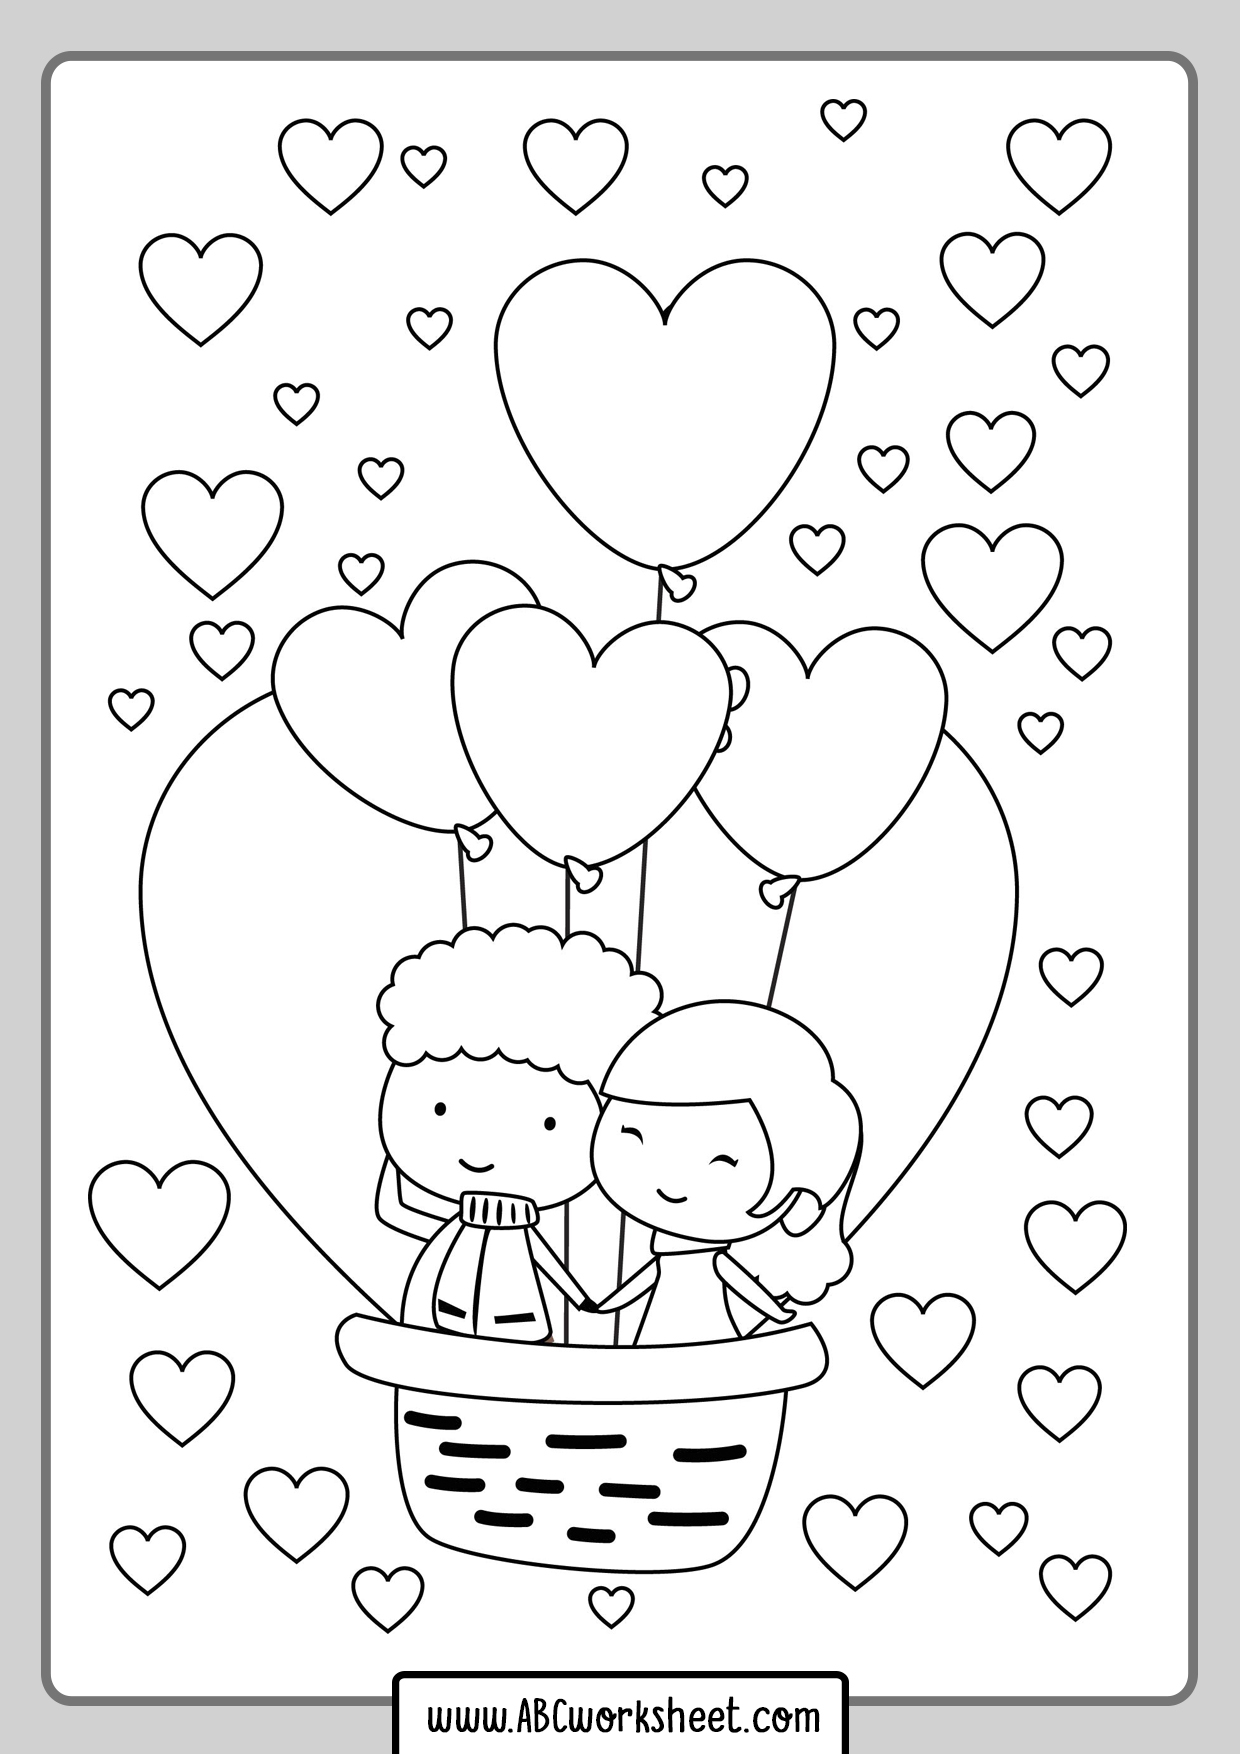 Printable Couple In Love Coloring Page